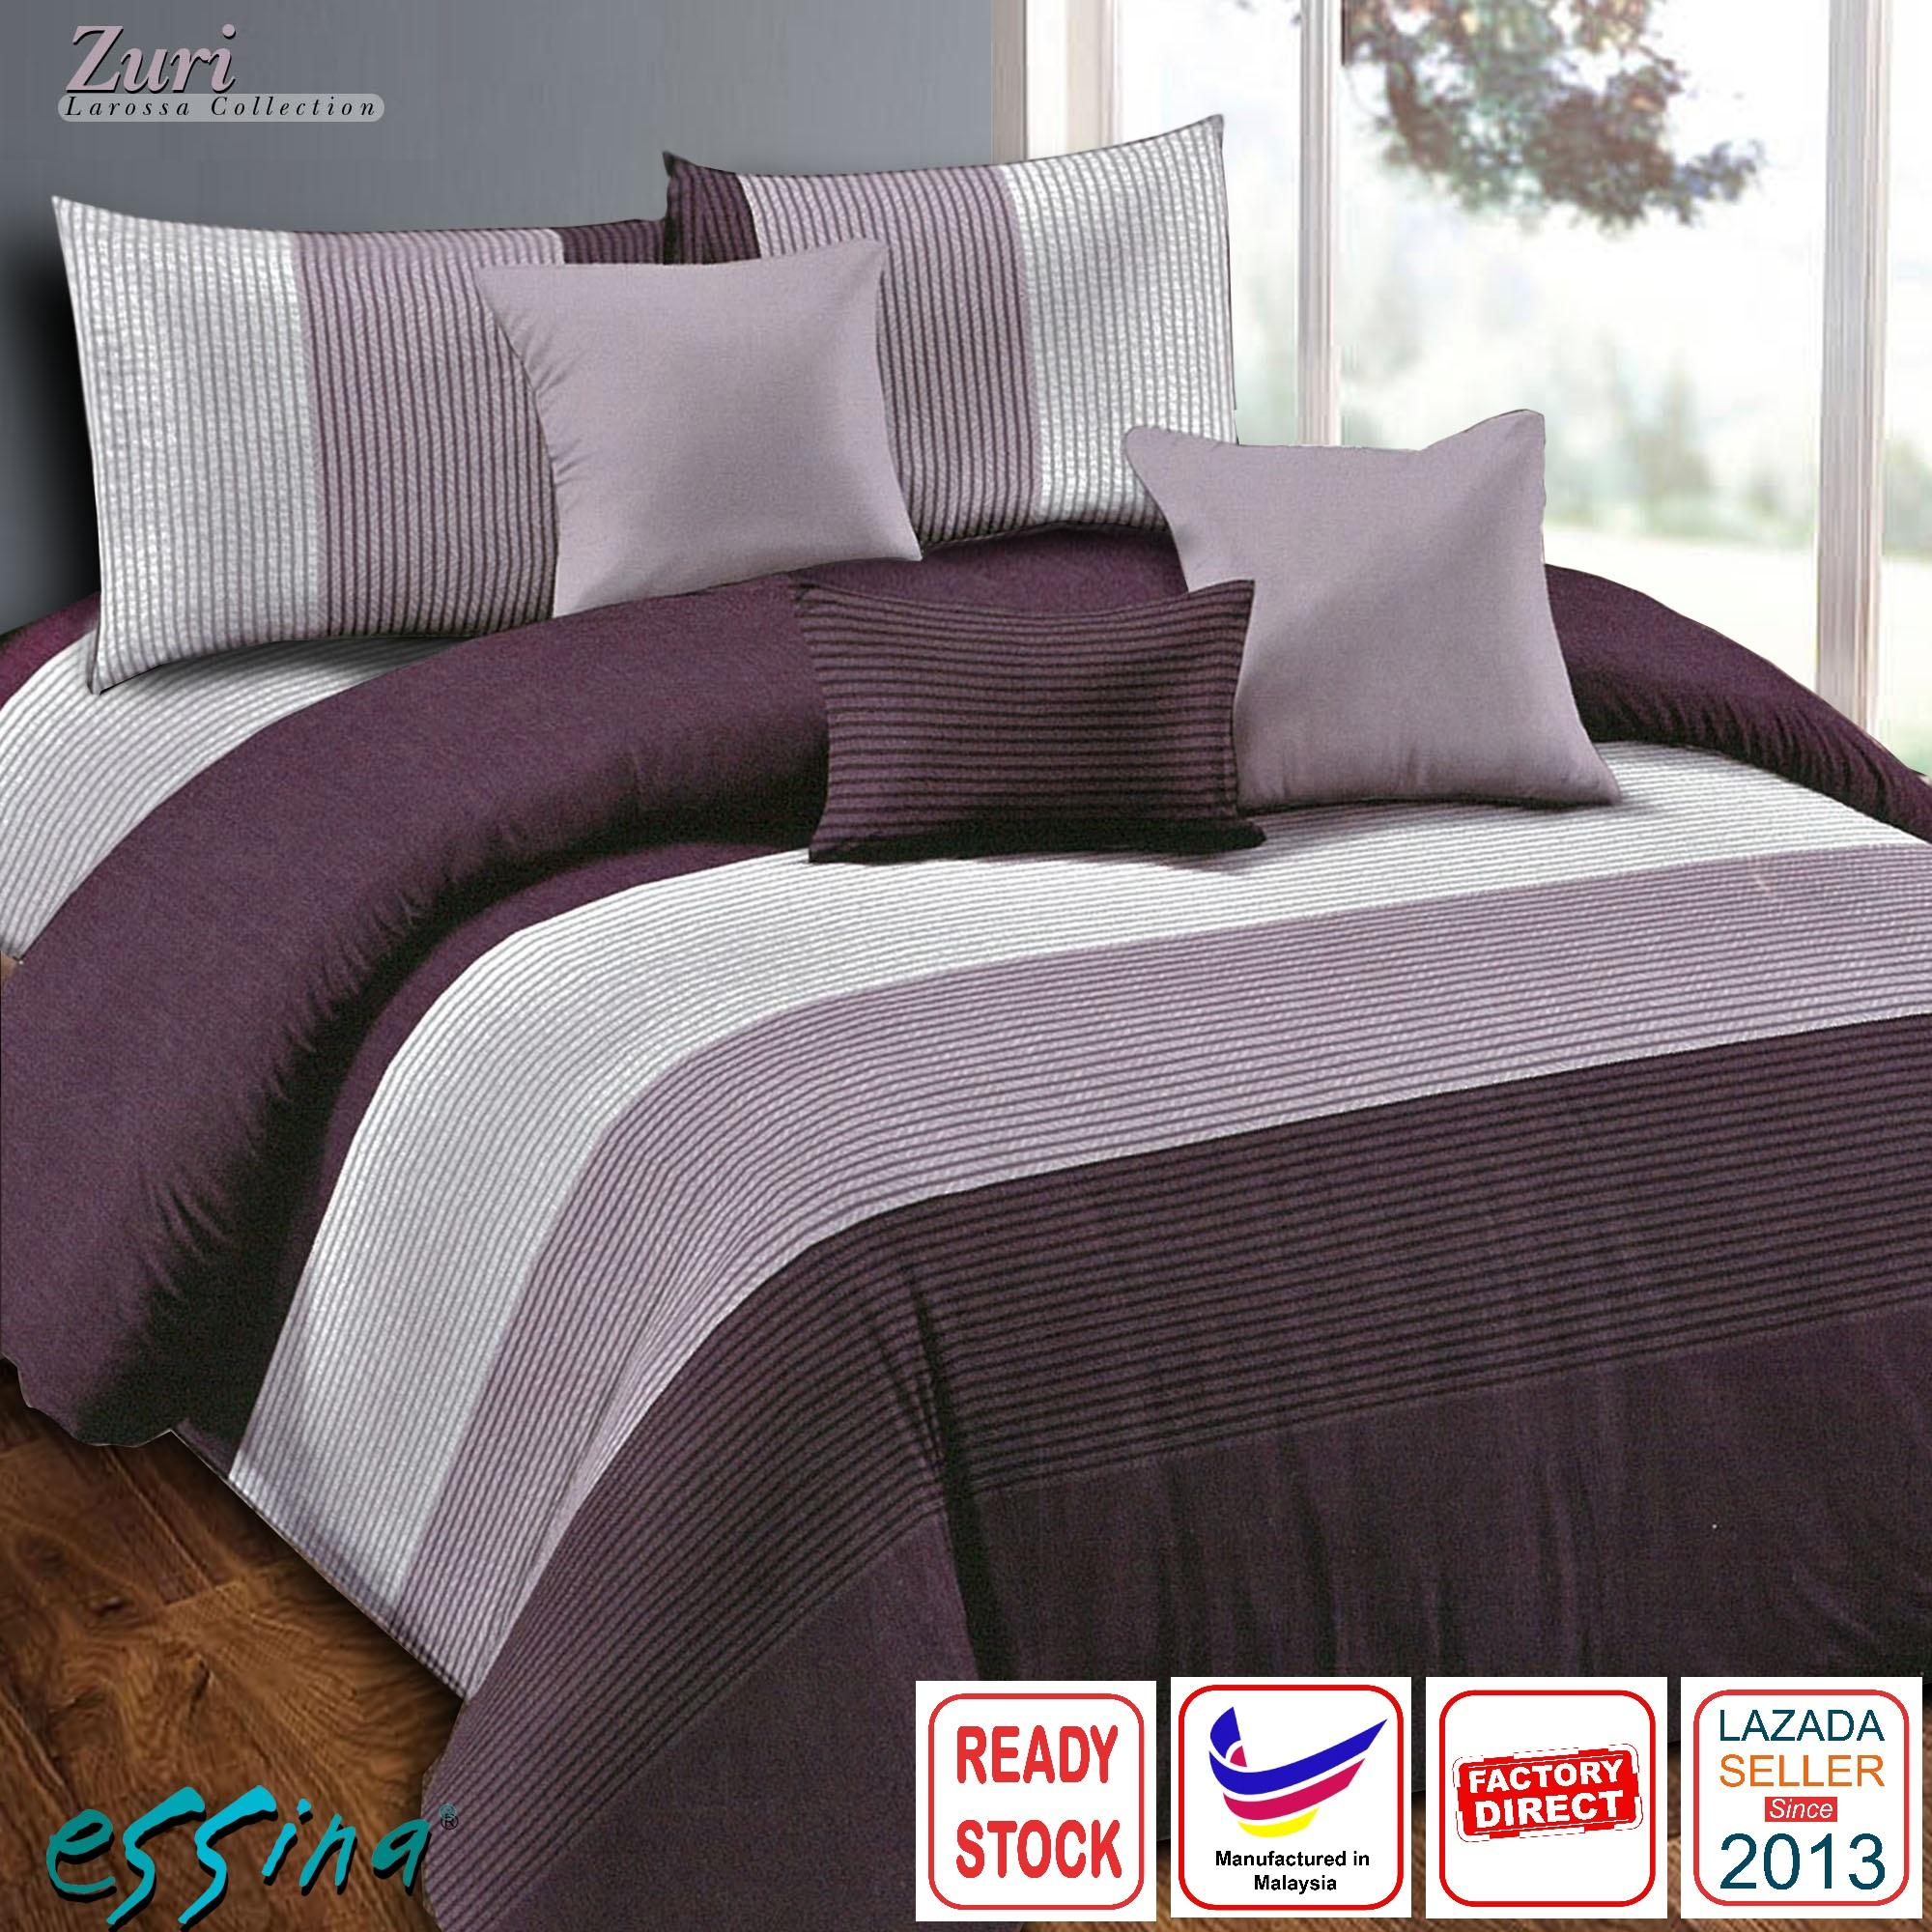 Essina Zuri Modern Design Quilt Cover & Fitted Bed Sheet set Microfiber Plush Fitted Bedsheet Cadar Queen / King / Super Single ( Larossa Collection )